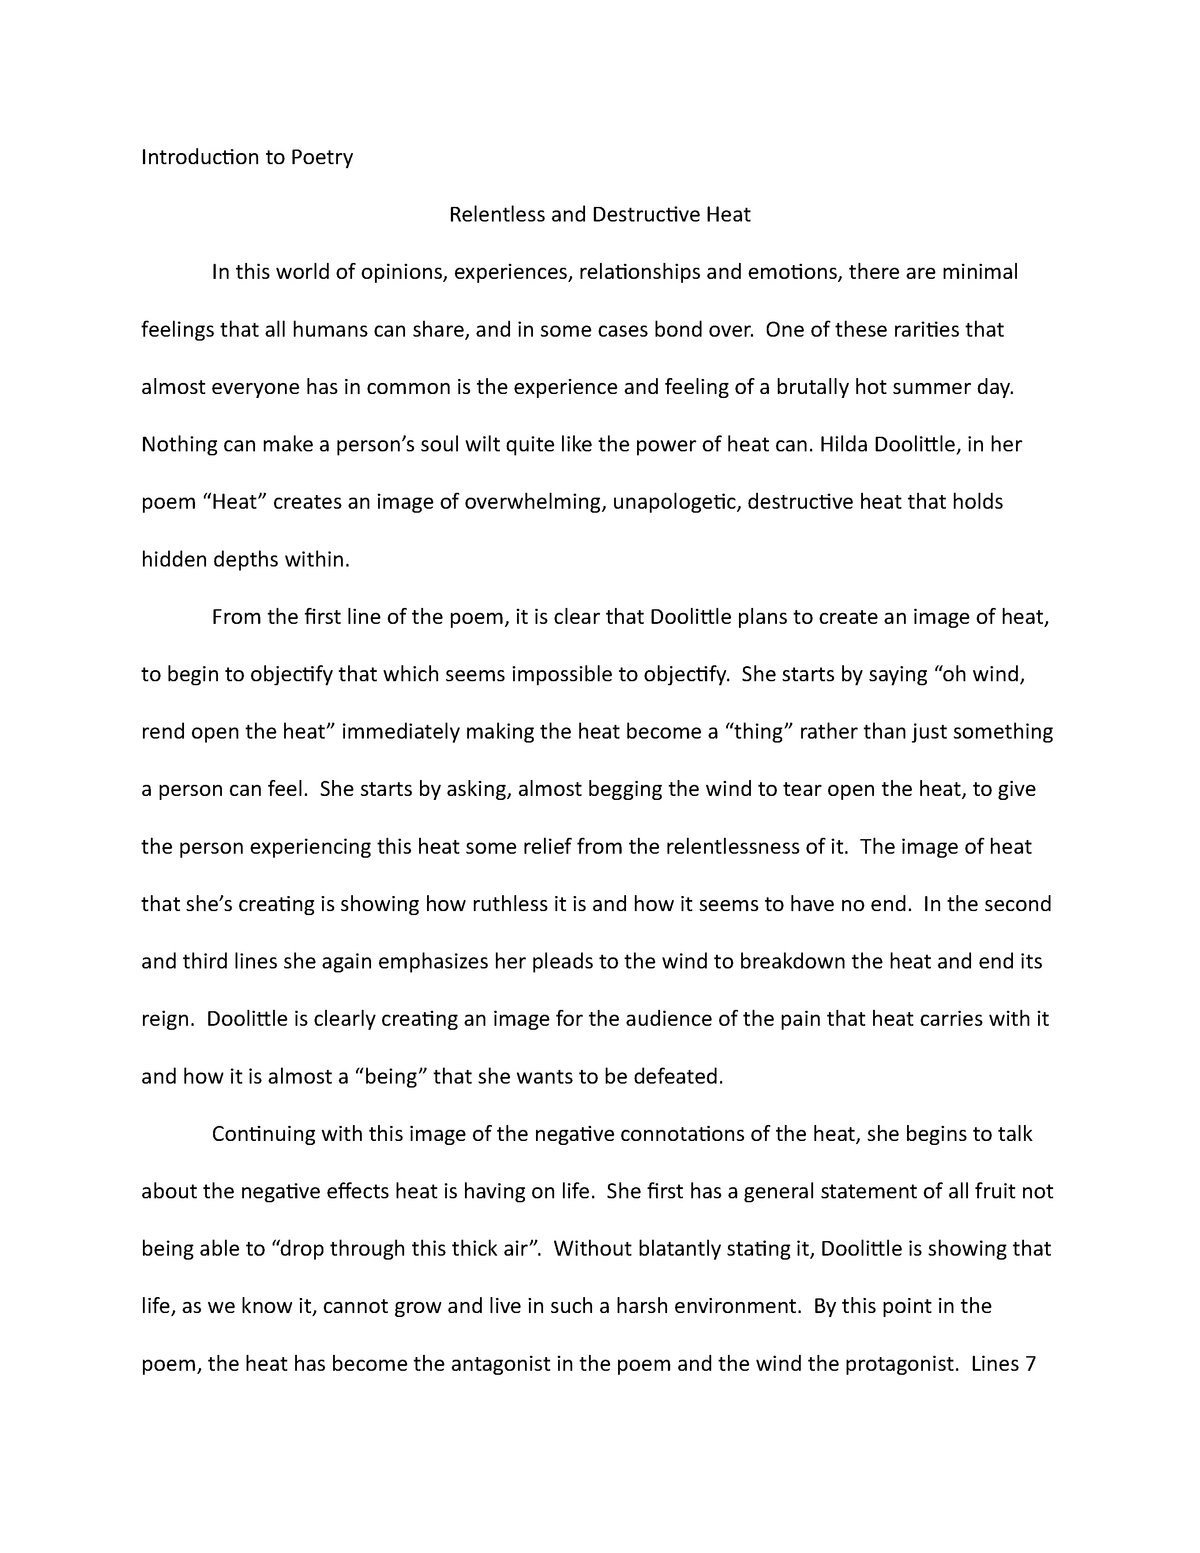 Poetry image analysis_essay - E 240: Introduction to Poetry